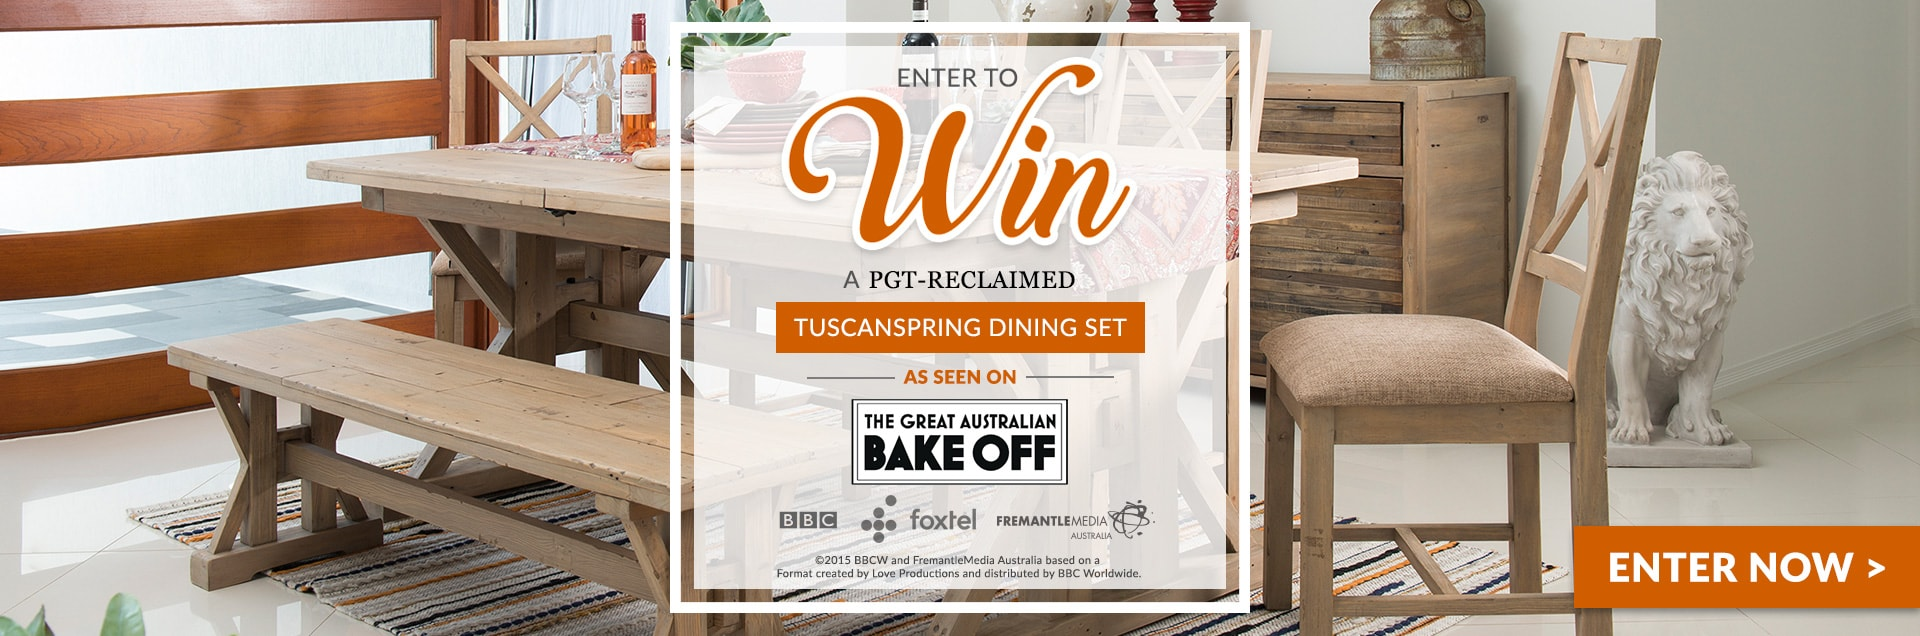 tuscanspring dining set contest